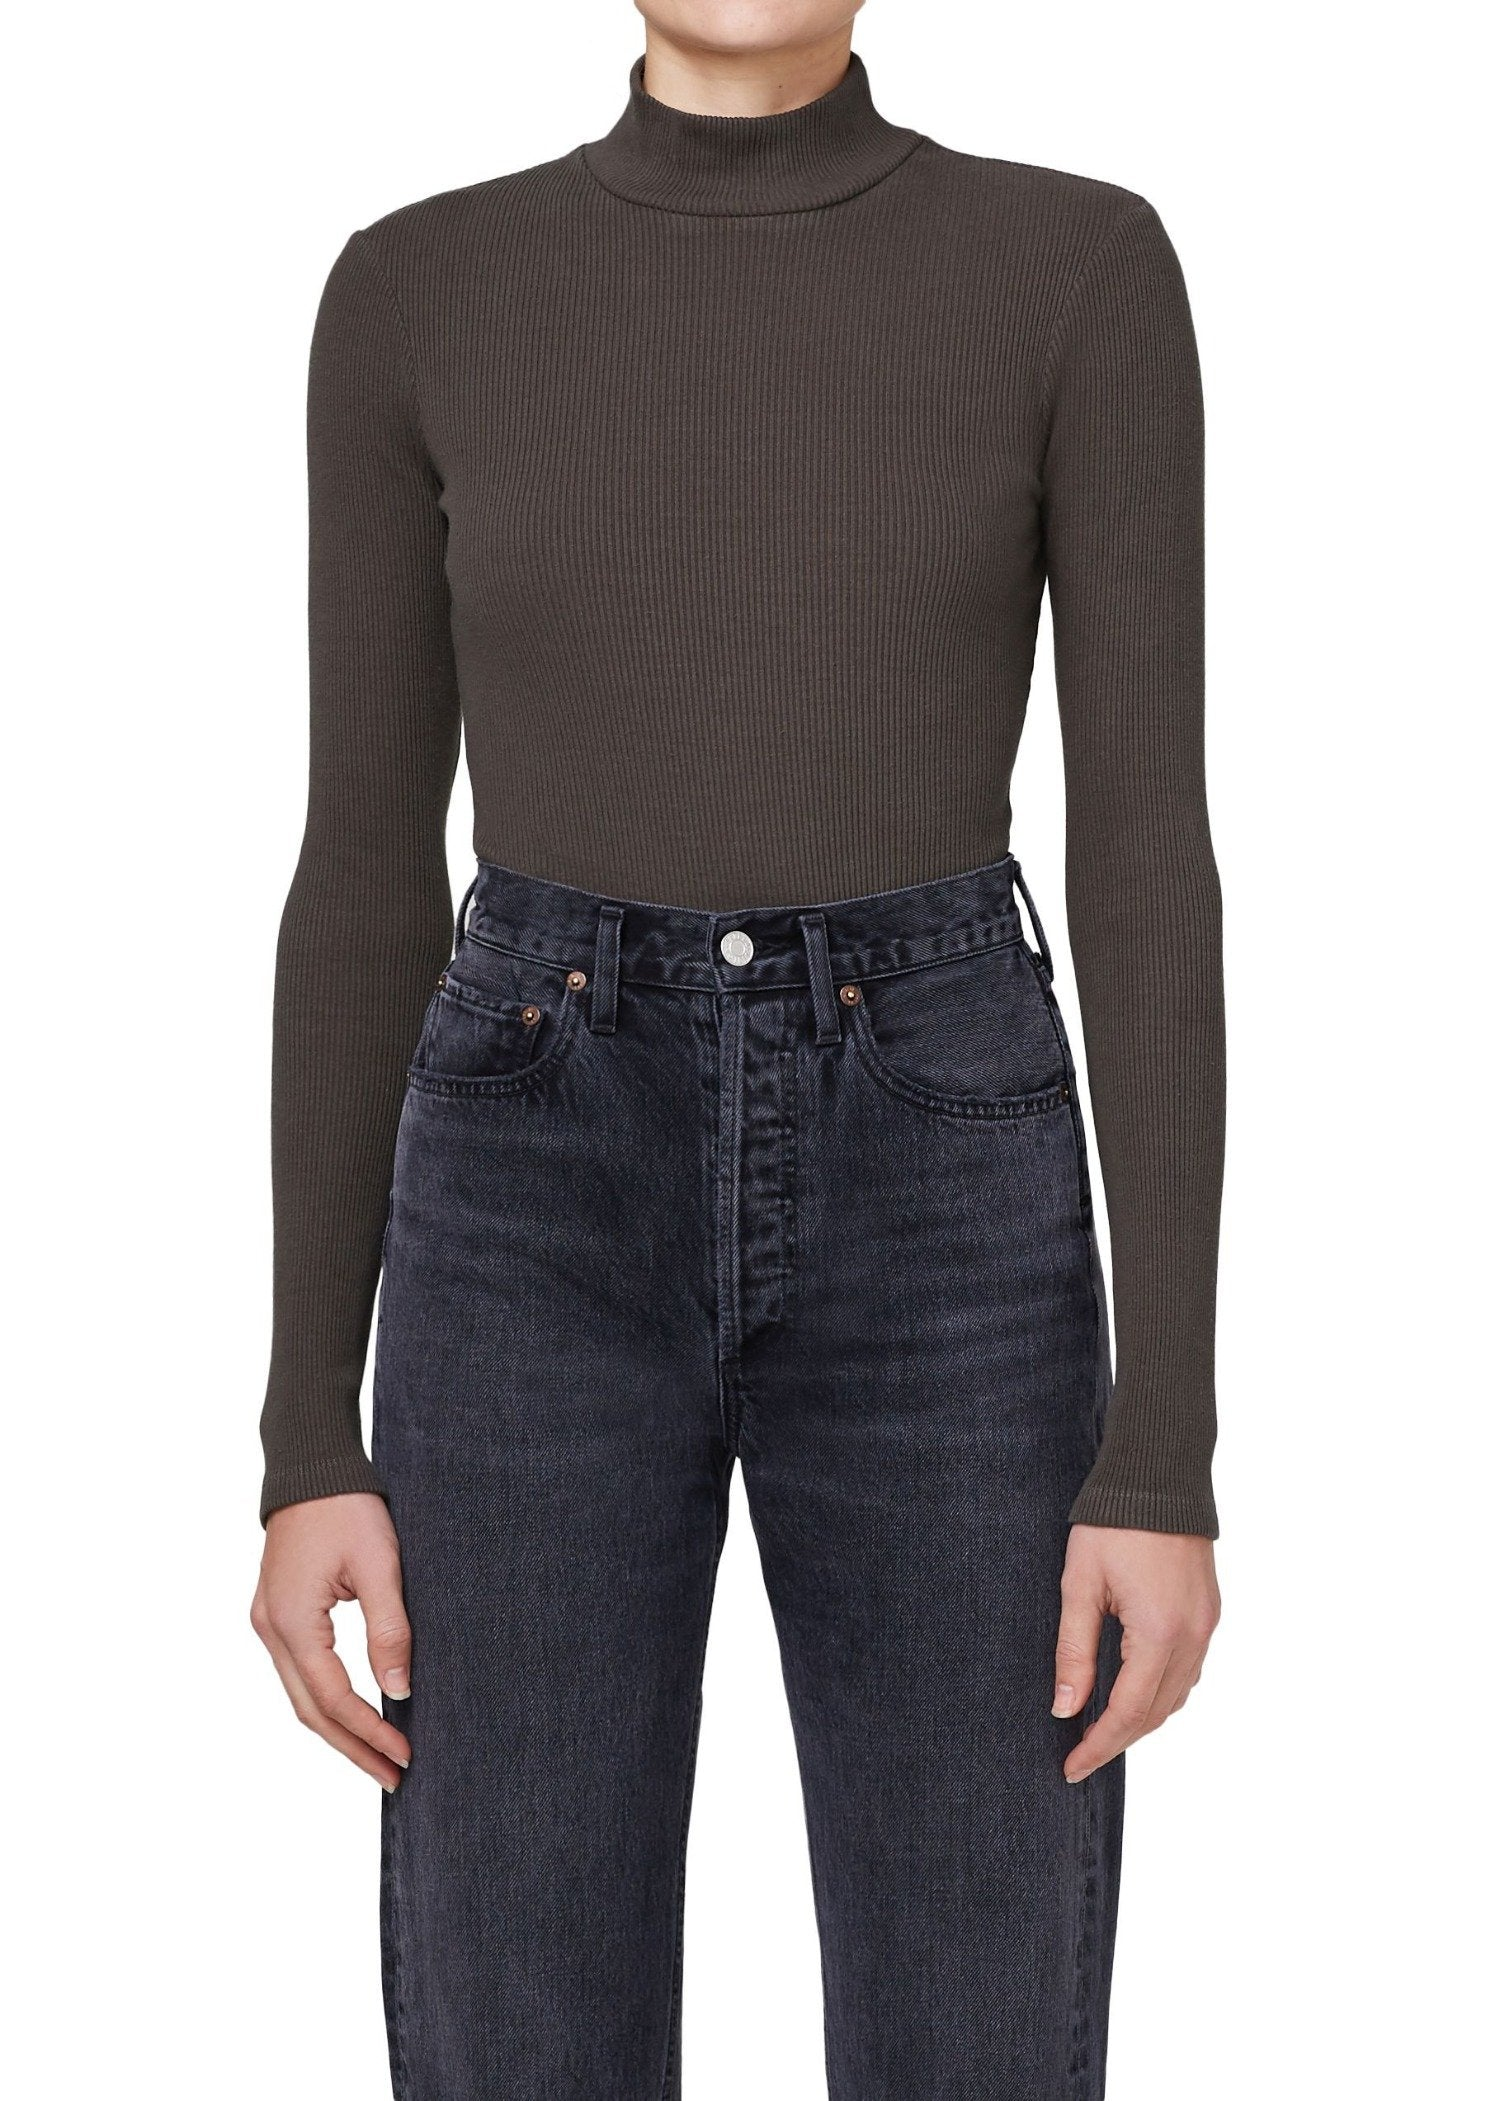 Load image into Gallery viewer, Turtleneck Long Sleeve Bodysuit - Foliage | Agolde - Women's Tops